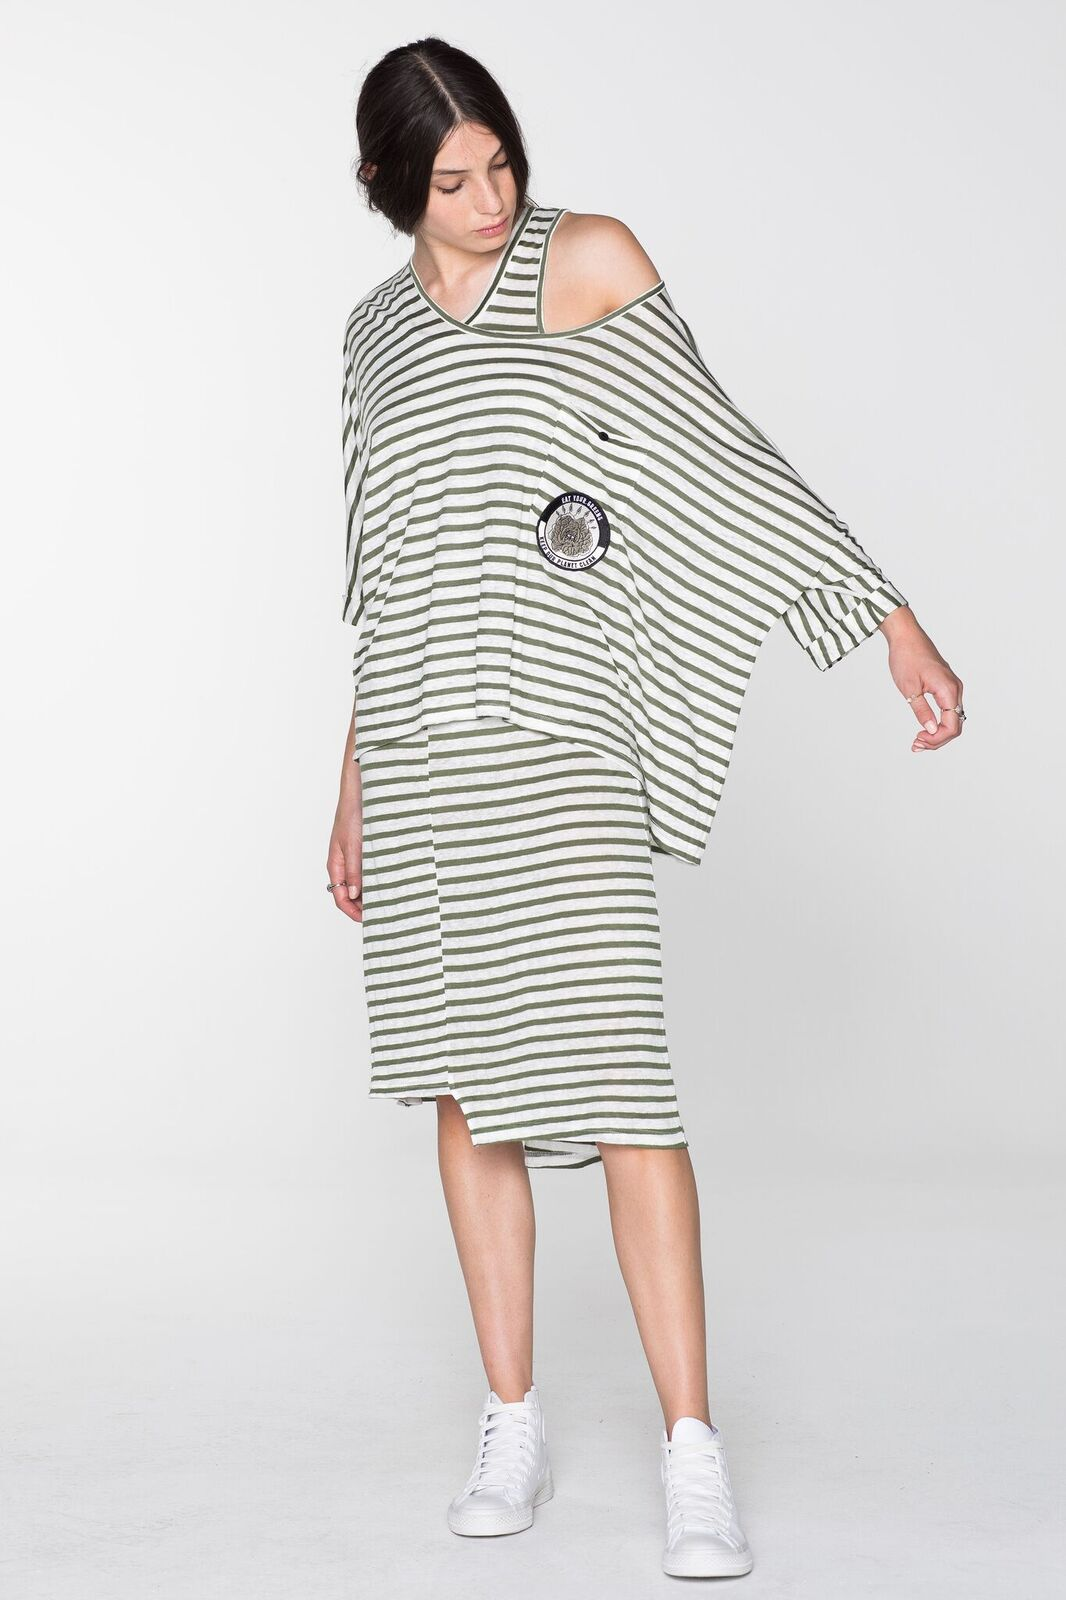 Salasai Survival Cotton Linen Dress Shop Salasai online or at our parnell shop Auckland stockists